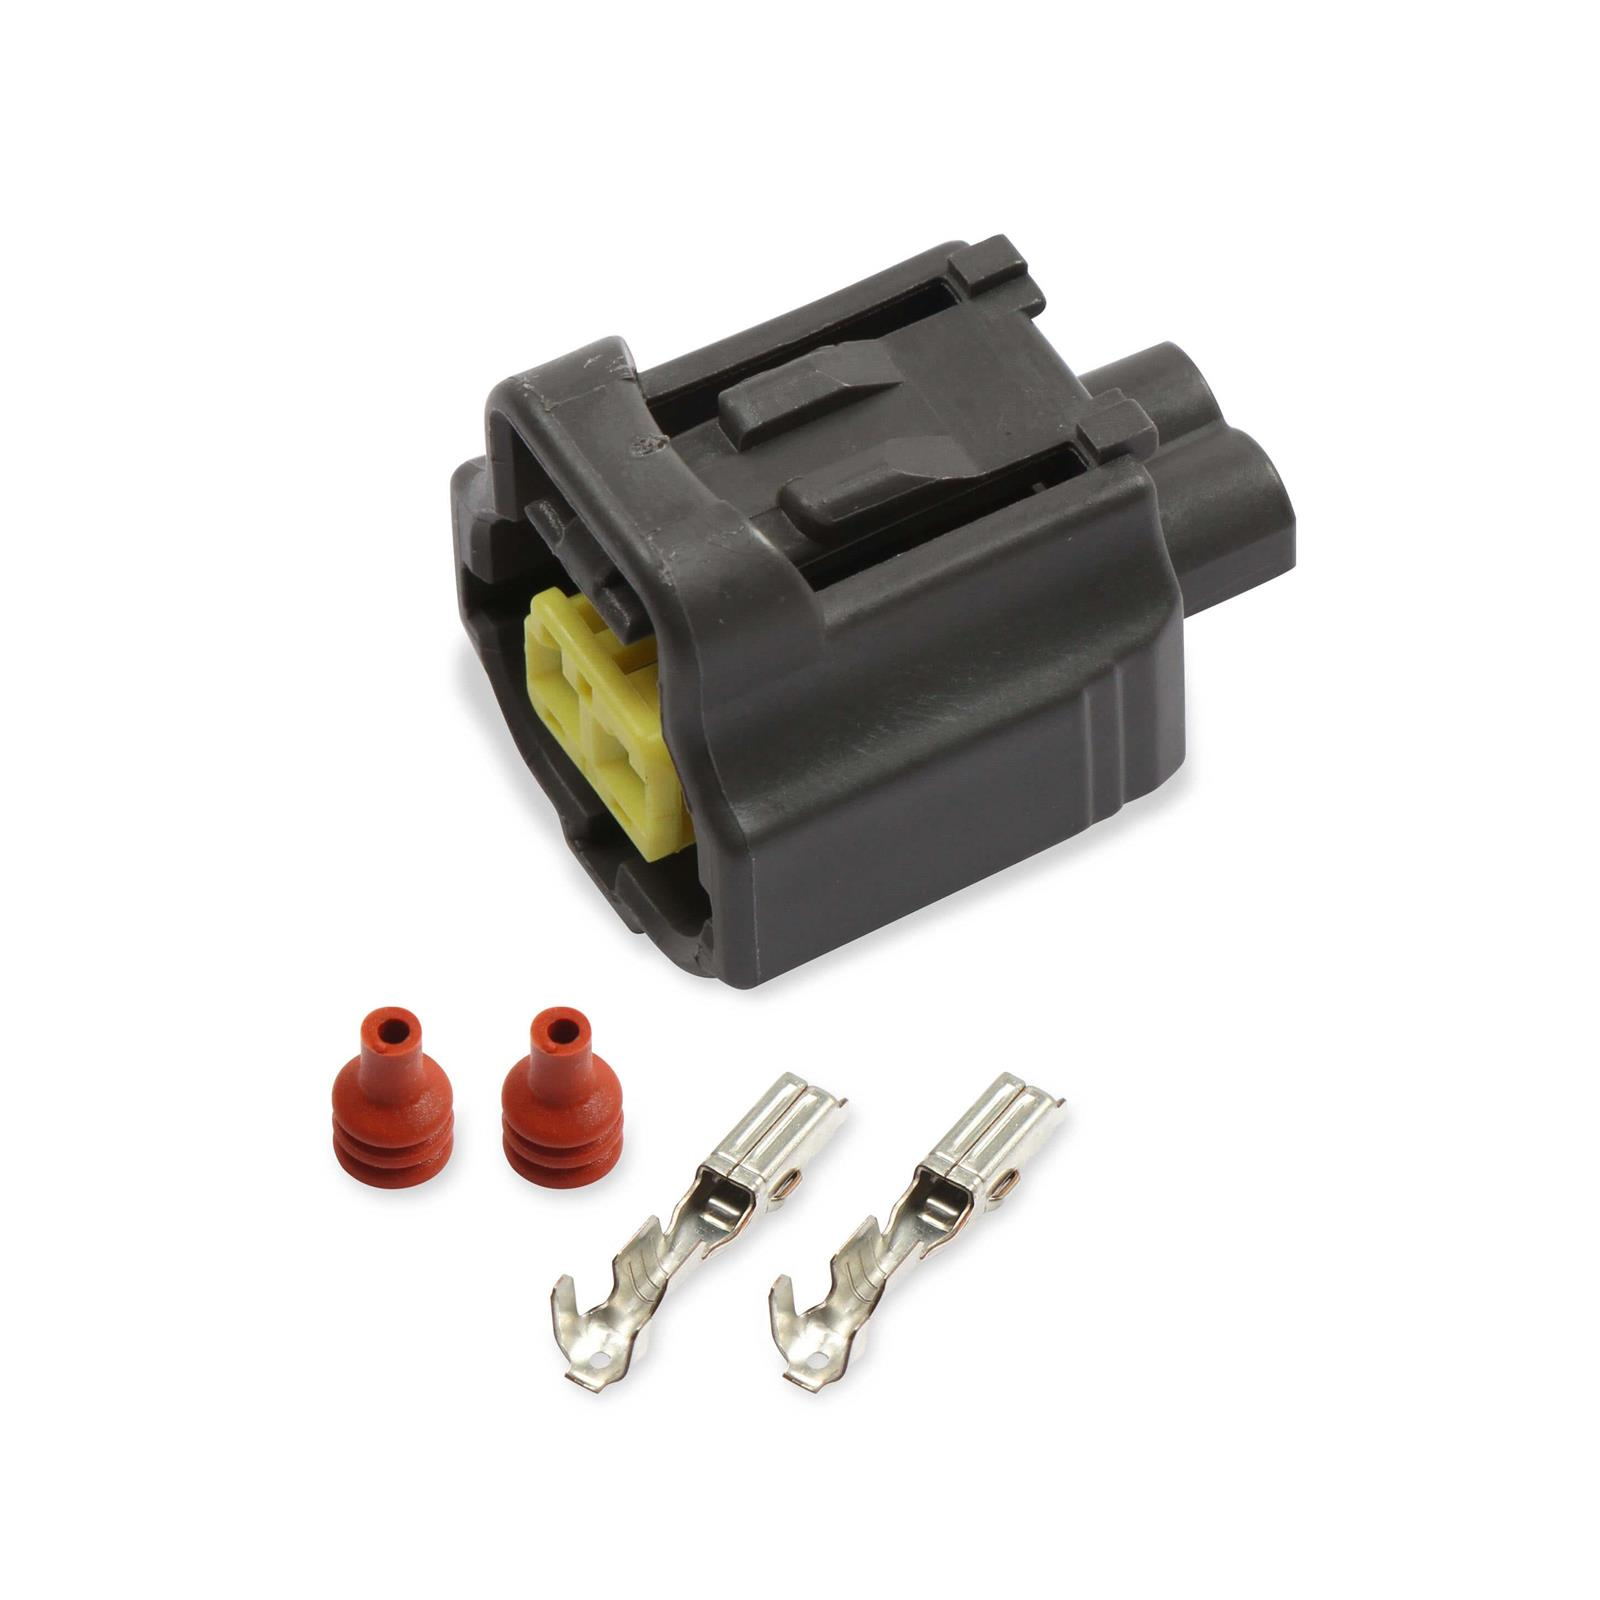 ford wiring connectors holley 570 236 modular ford coolant temp sensor connector classic ford wiring connectors modular ford coolant temp sensor connector